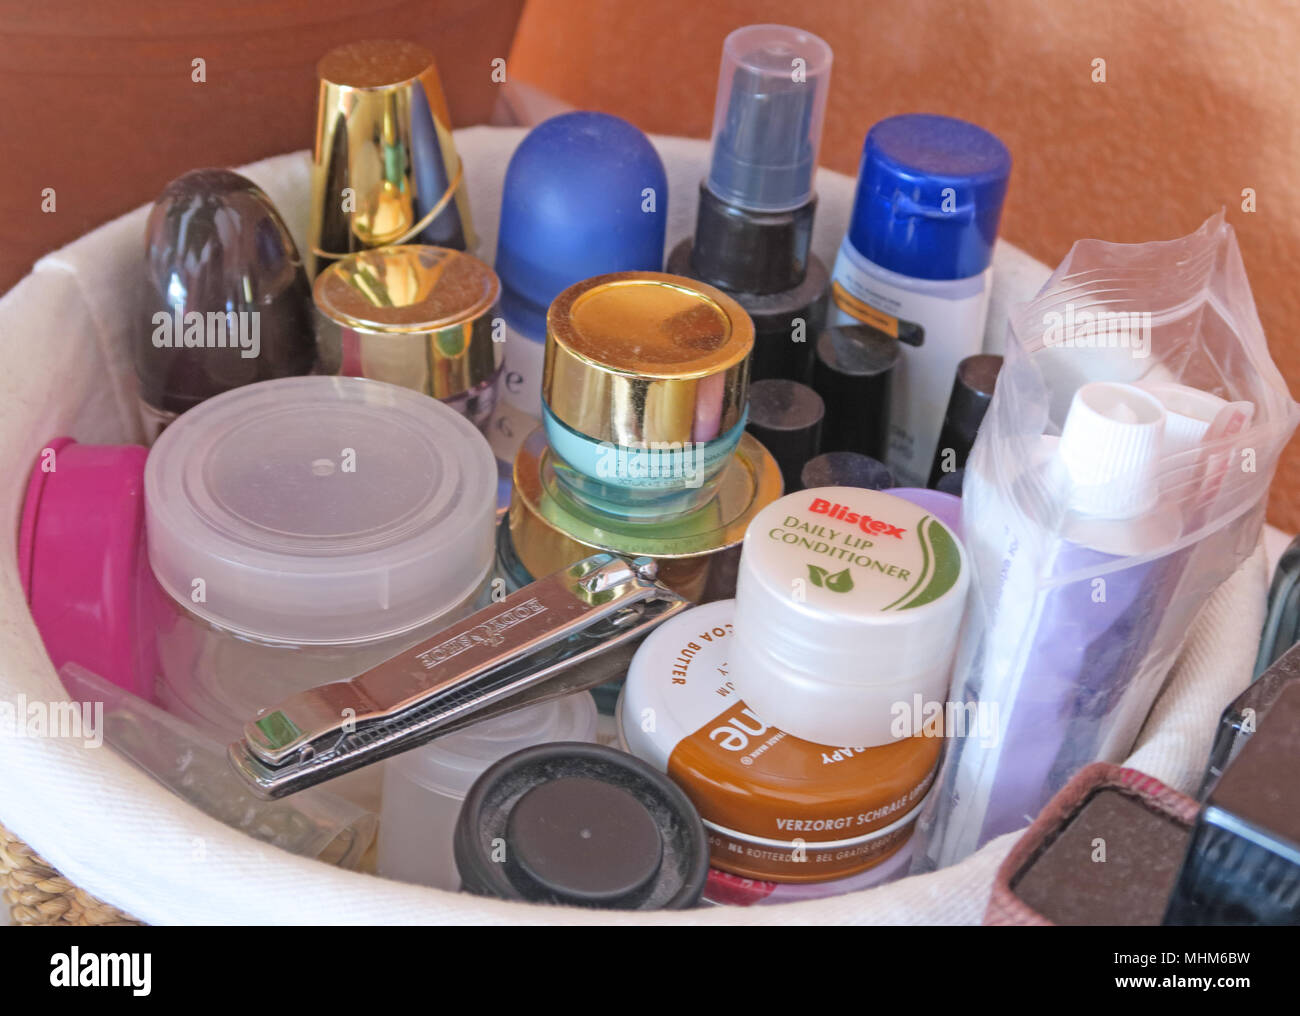 Common Toiletries - Stock Image